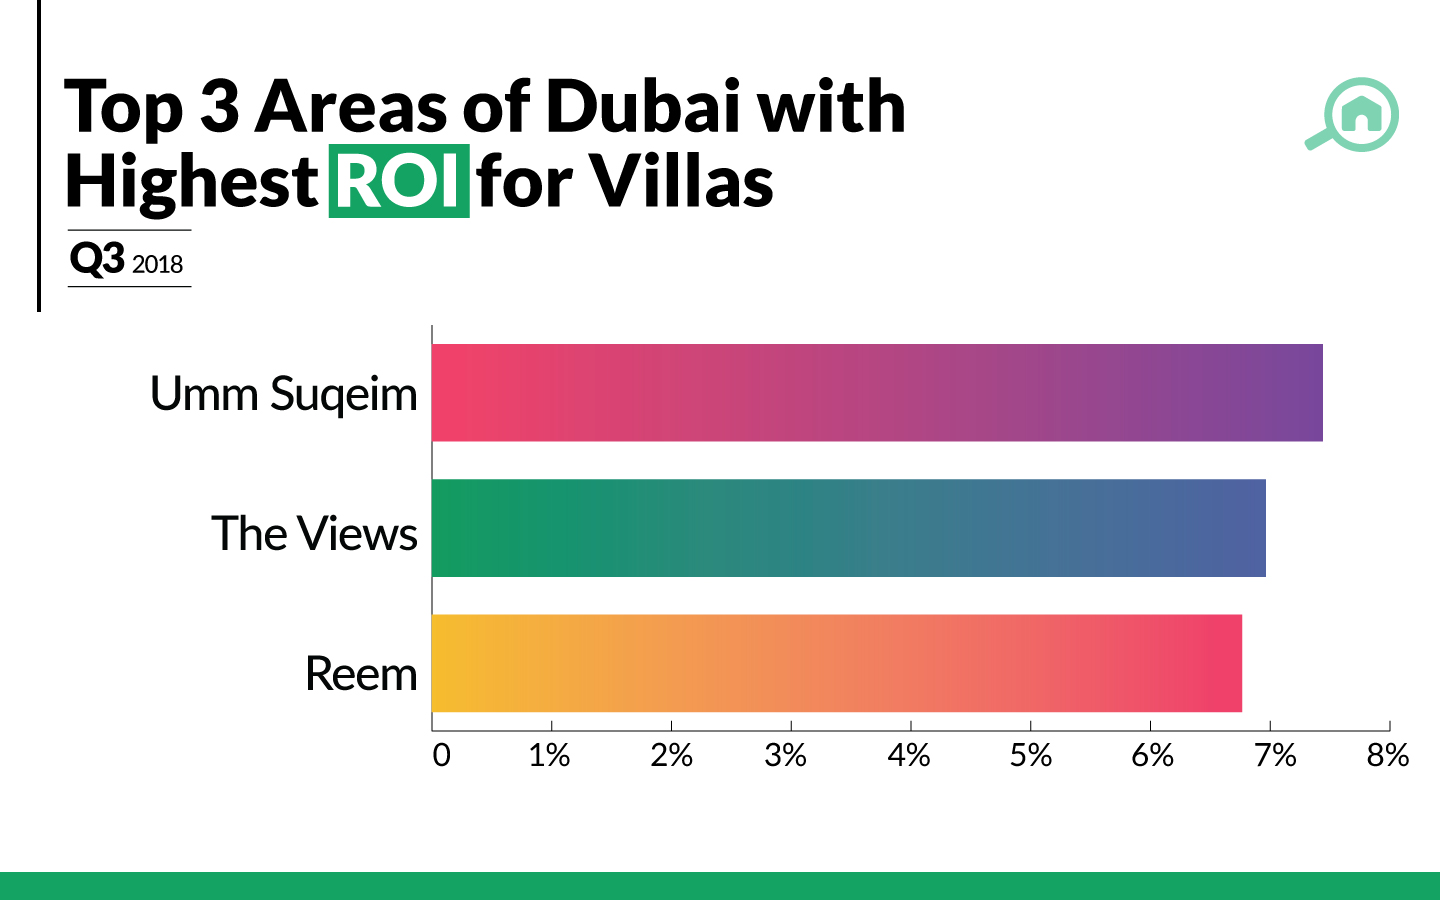 Areas with best ROI for villas